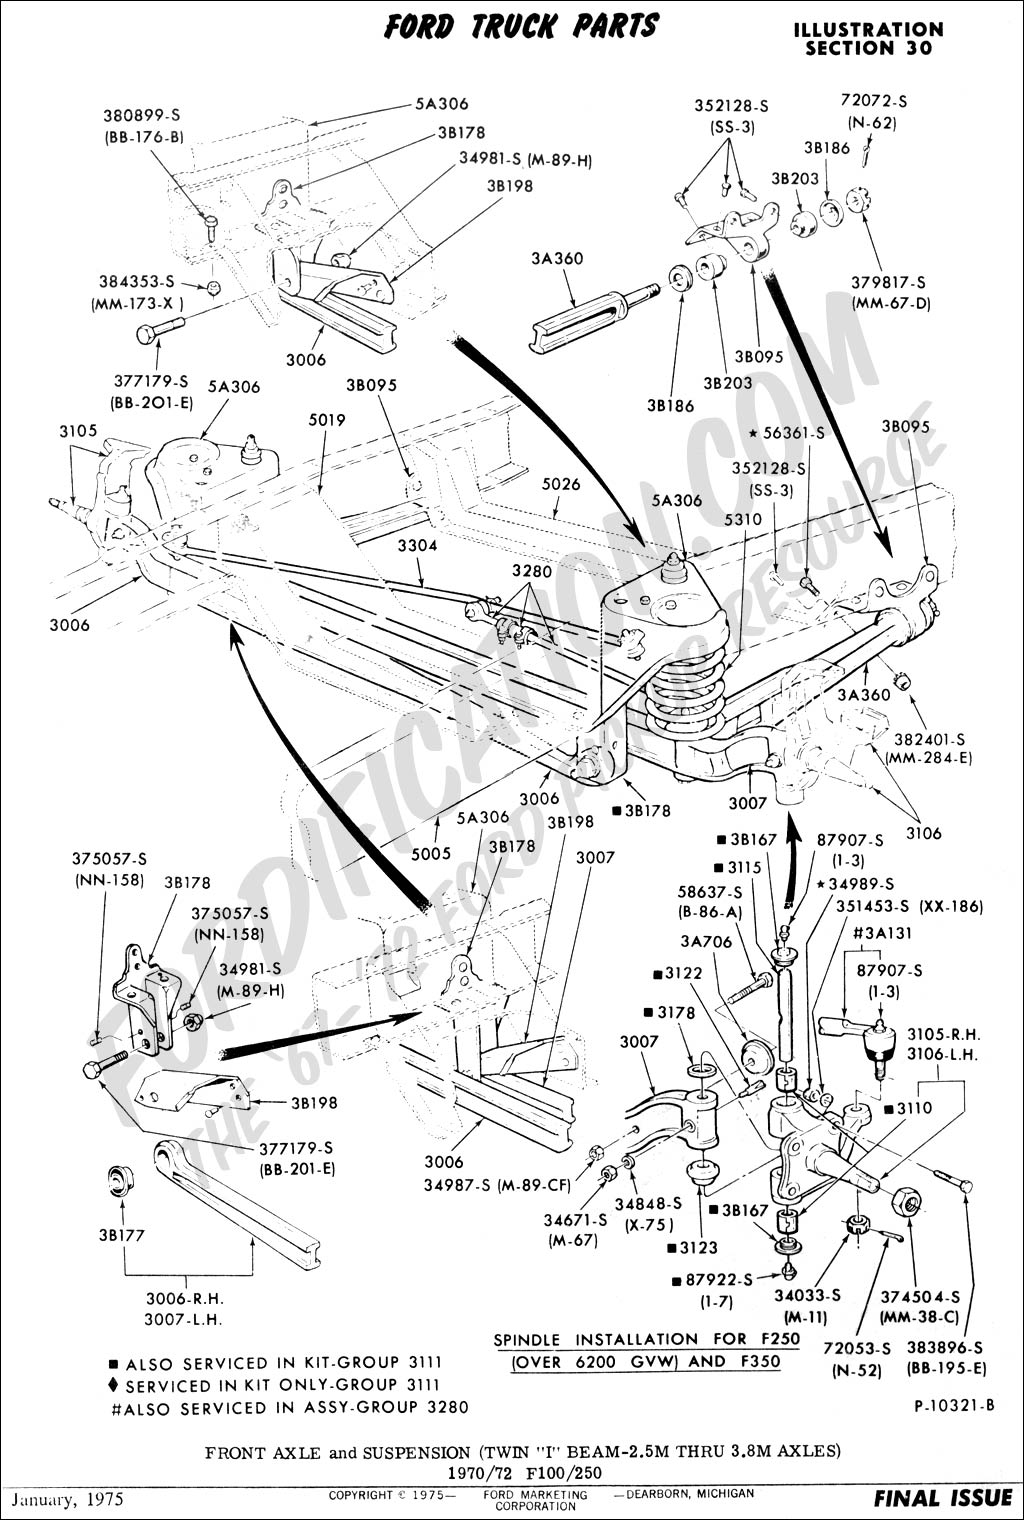 2000 ford f350 front axle diagram wedocable